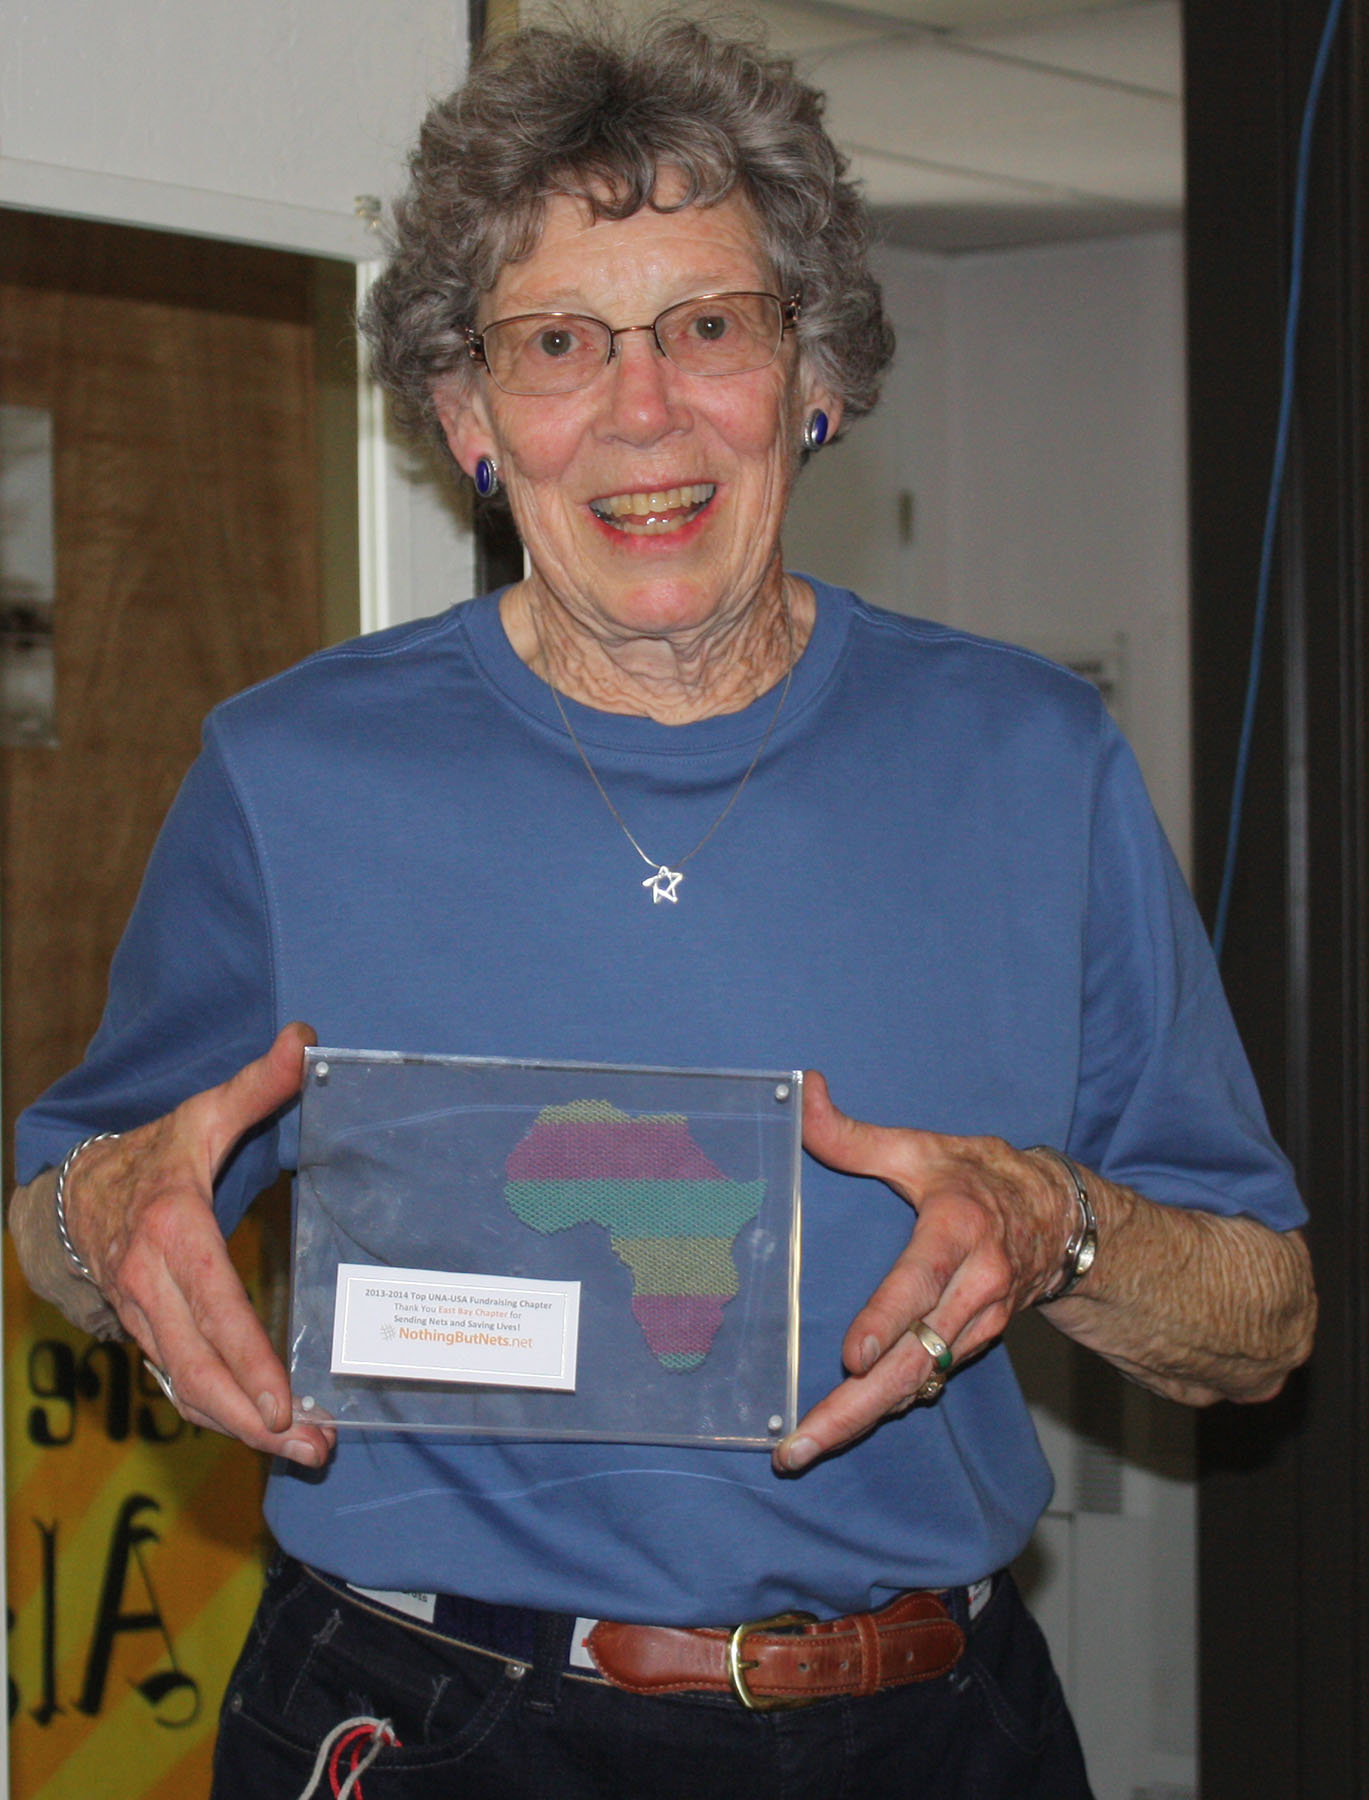 Dennis Evanosky - Joanne Robinson, Red Cross Youth Advisor, shows off the award Alameda's network earned this year.